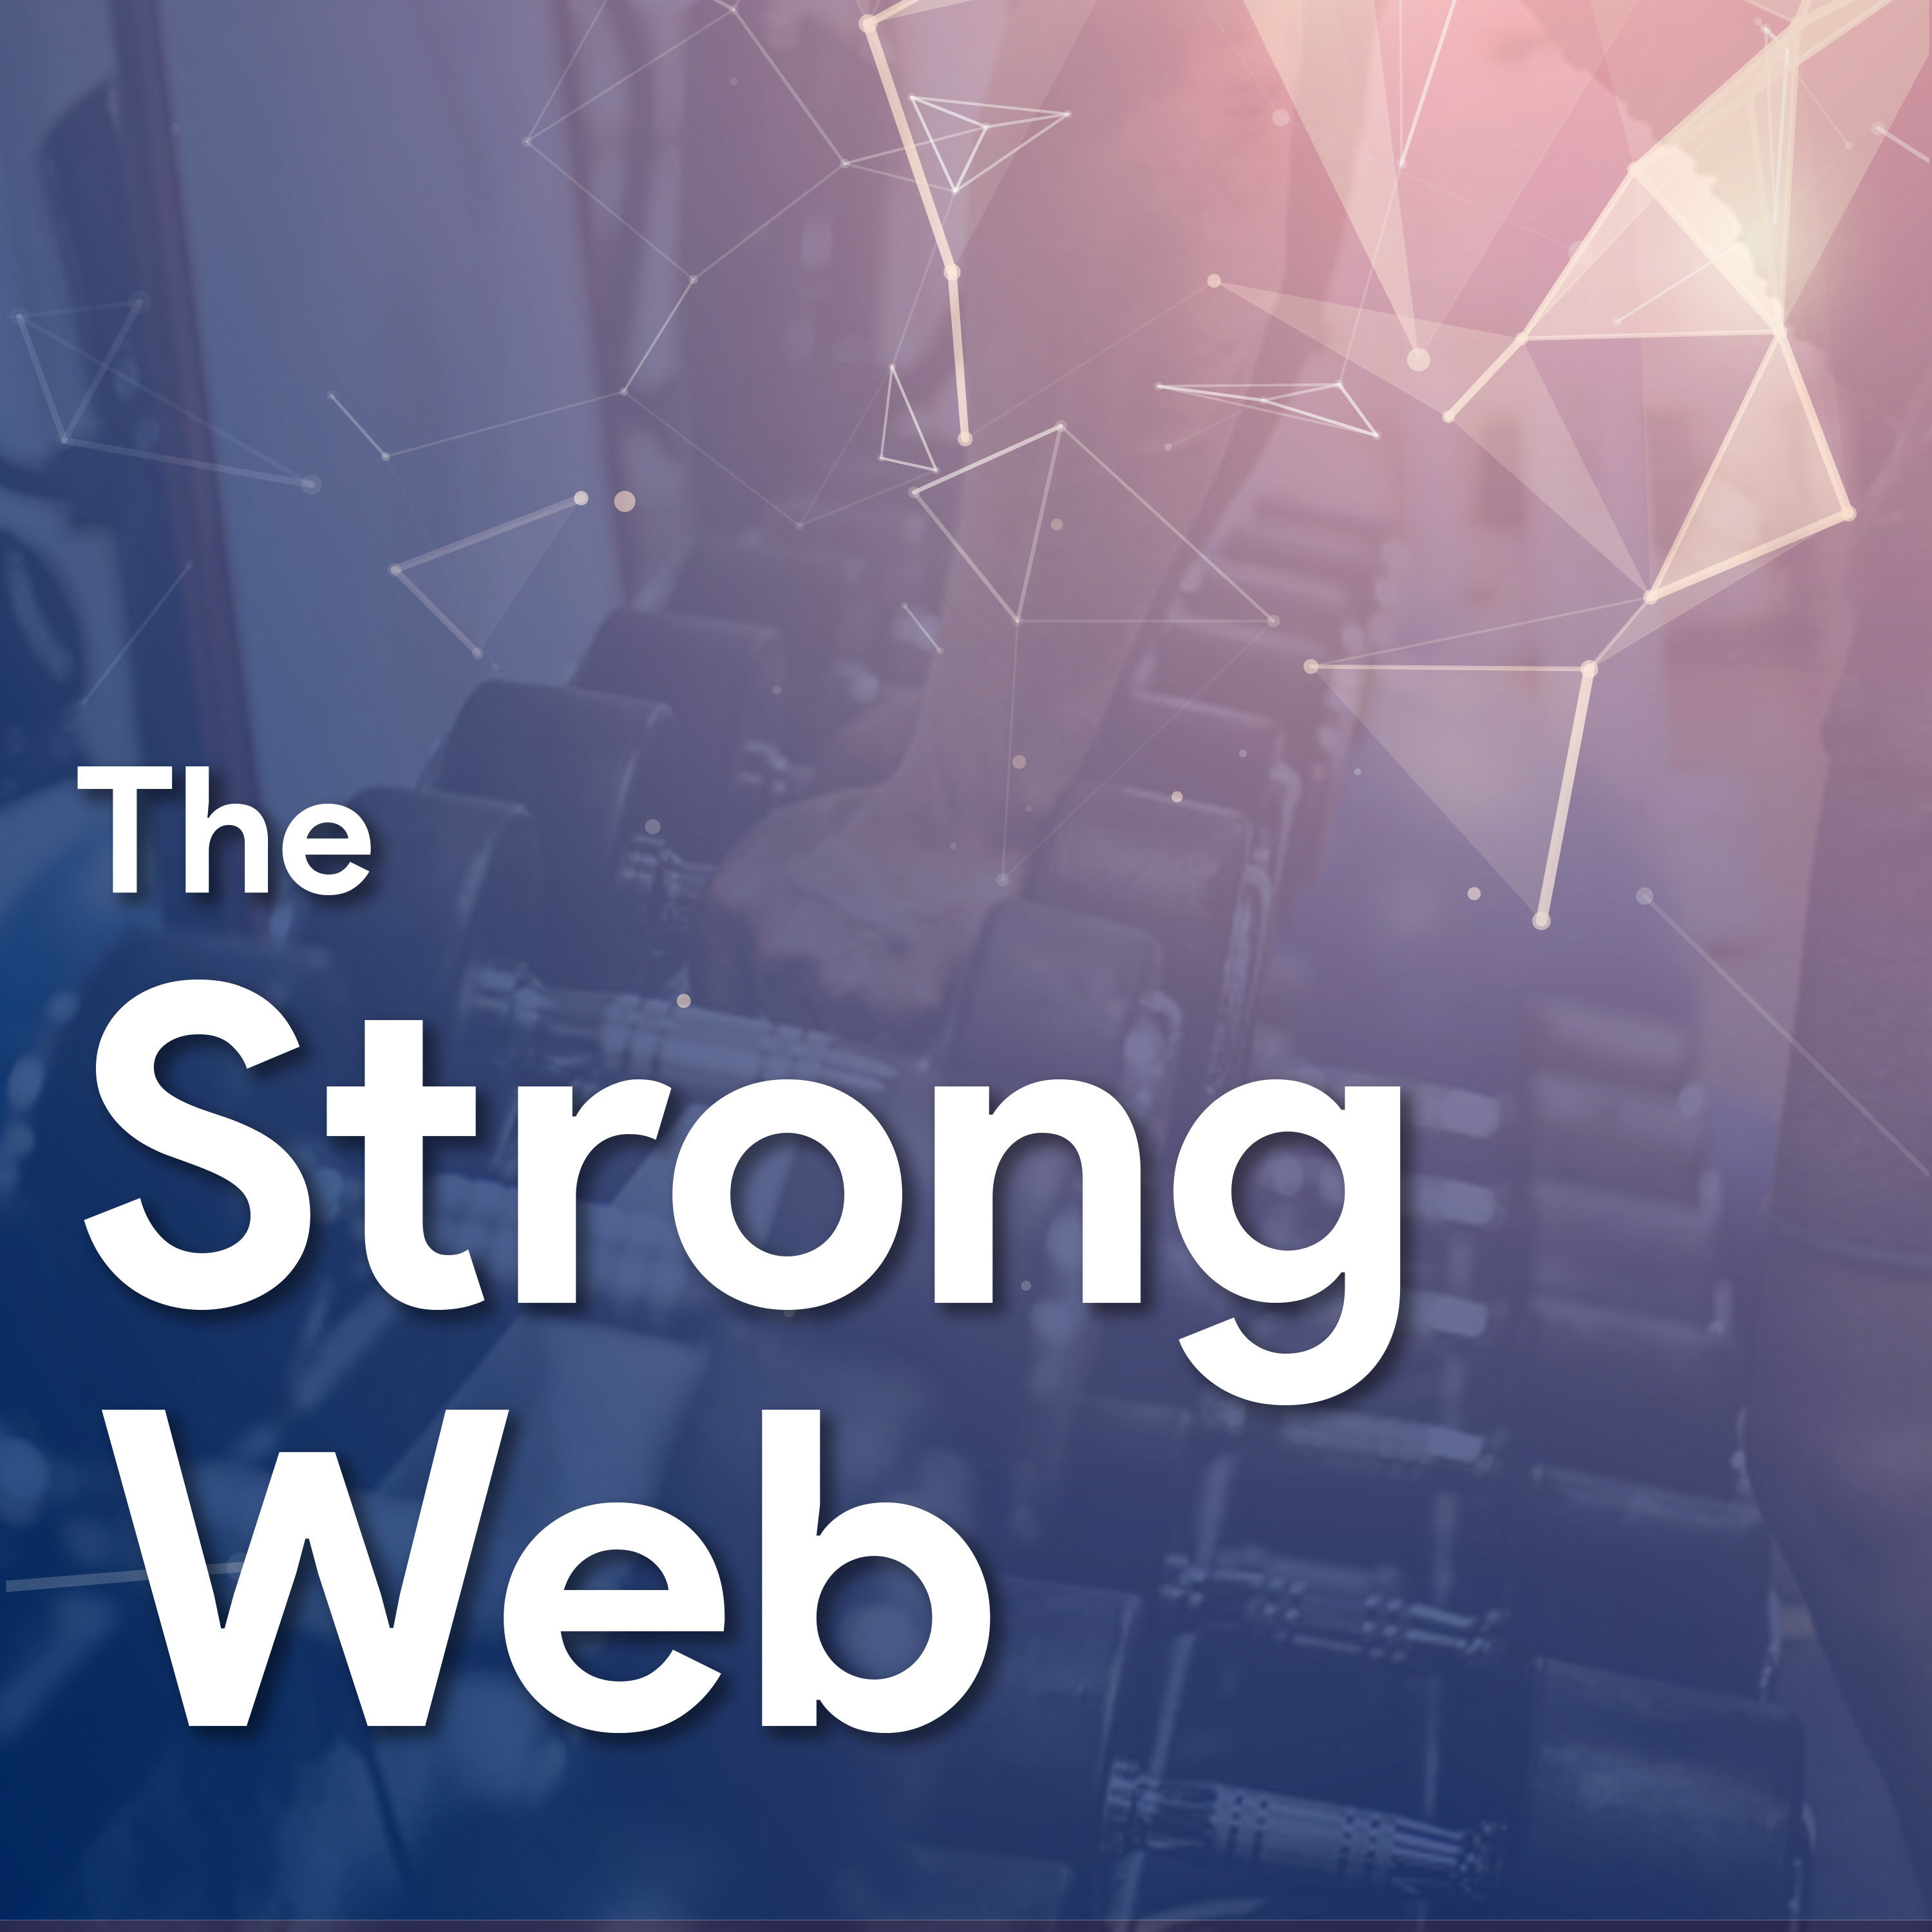 The Strong Web